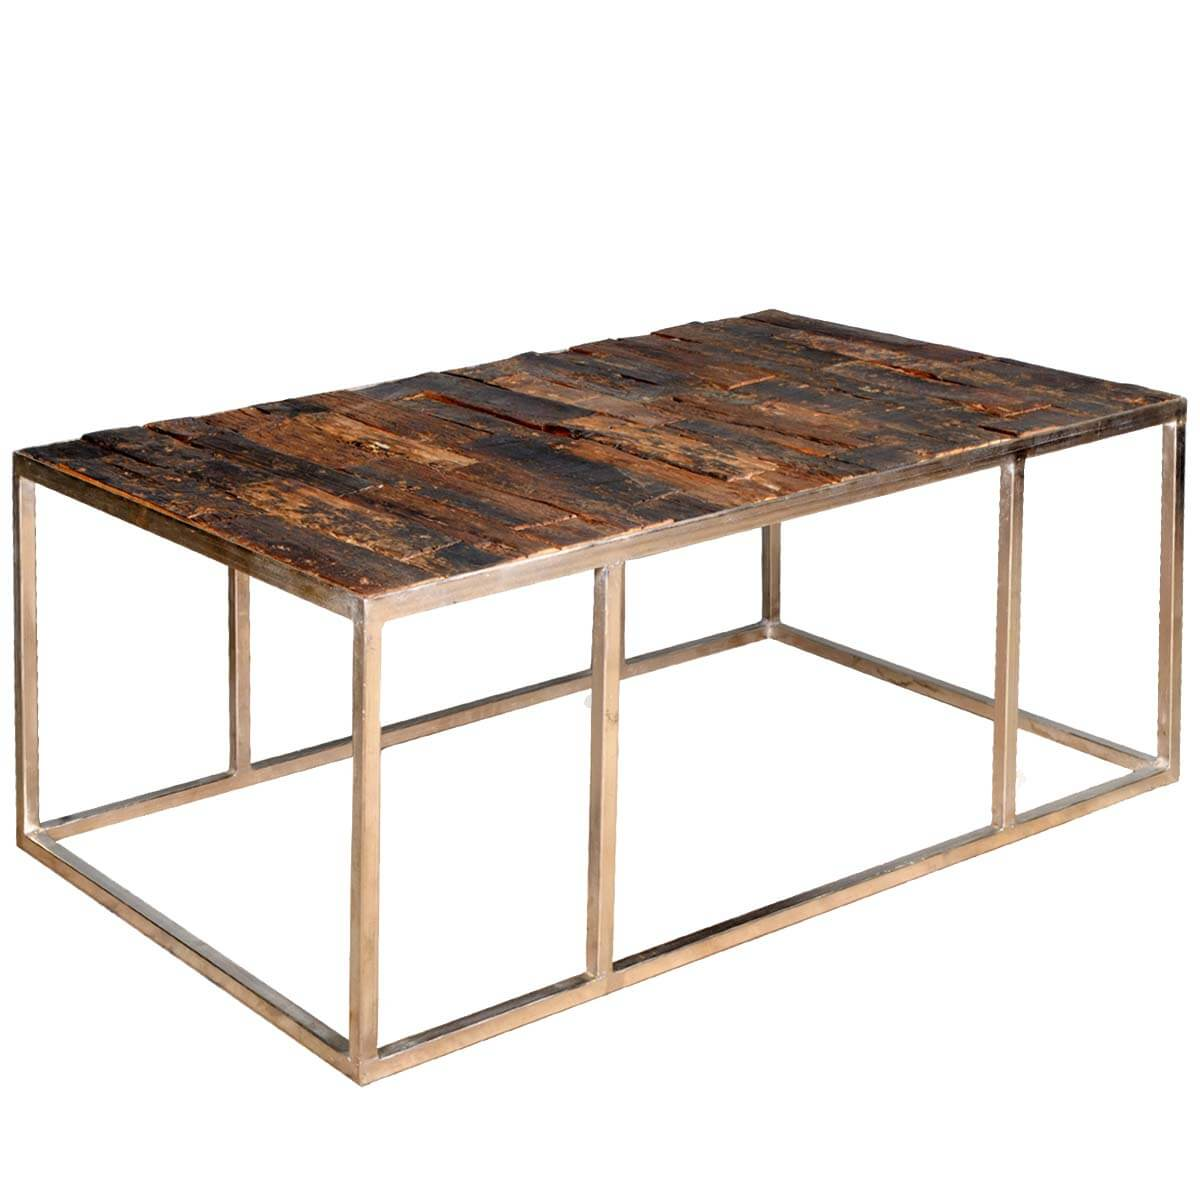 Contemporary Iron Railroad Tie Eco Smart Coffee Table